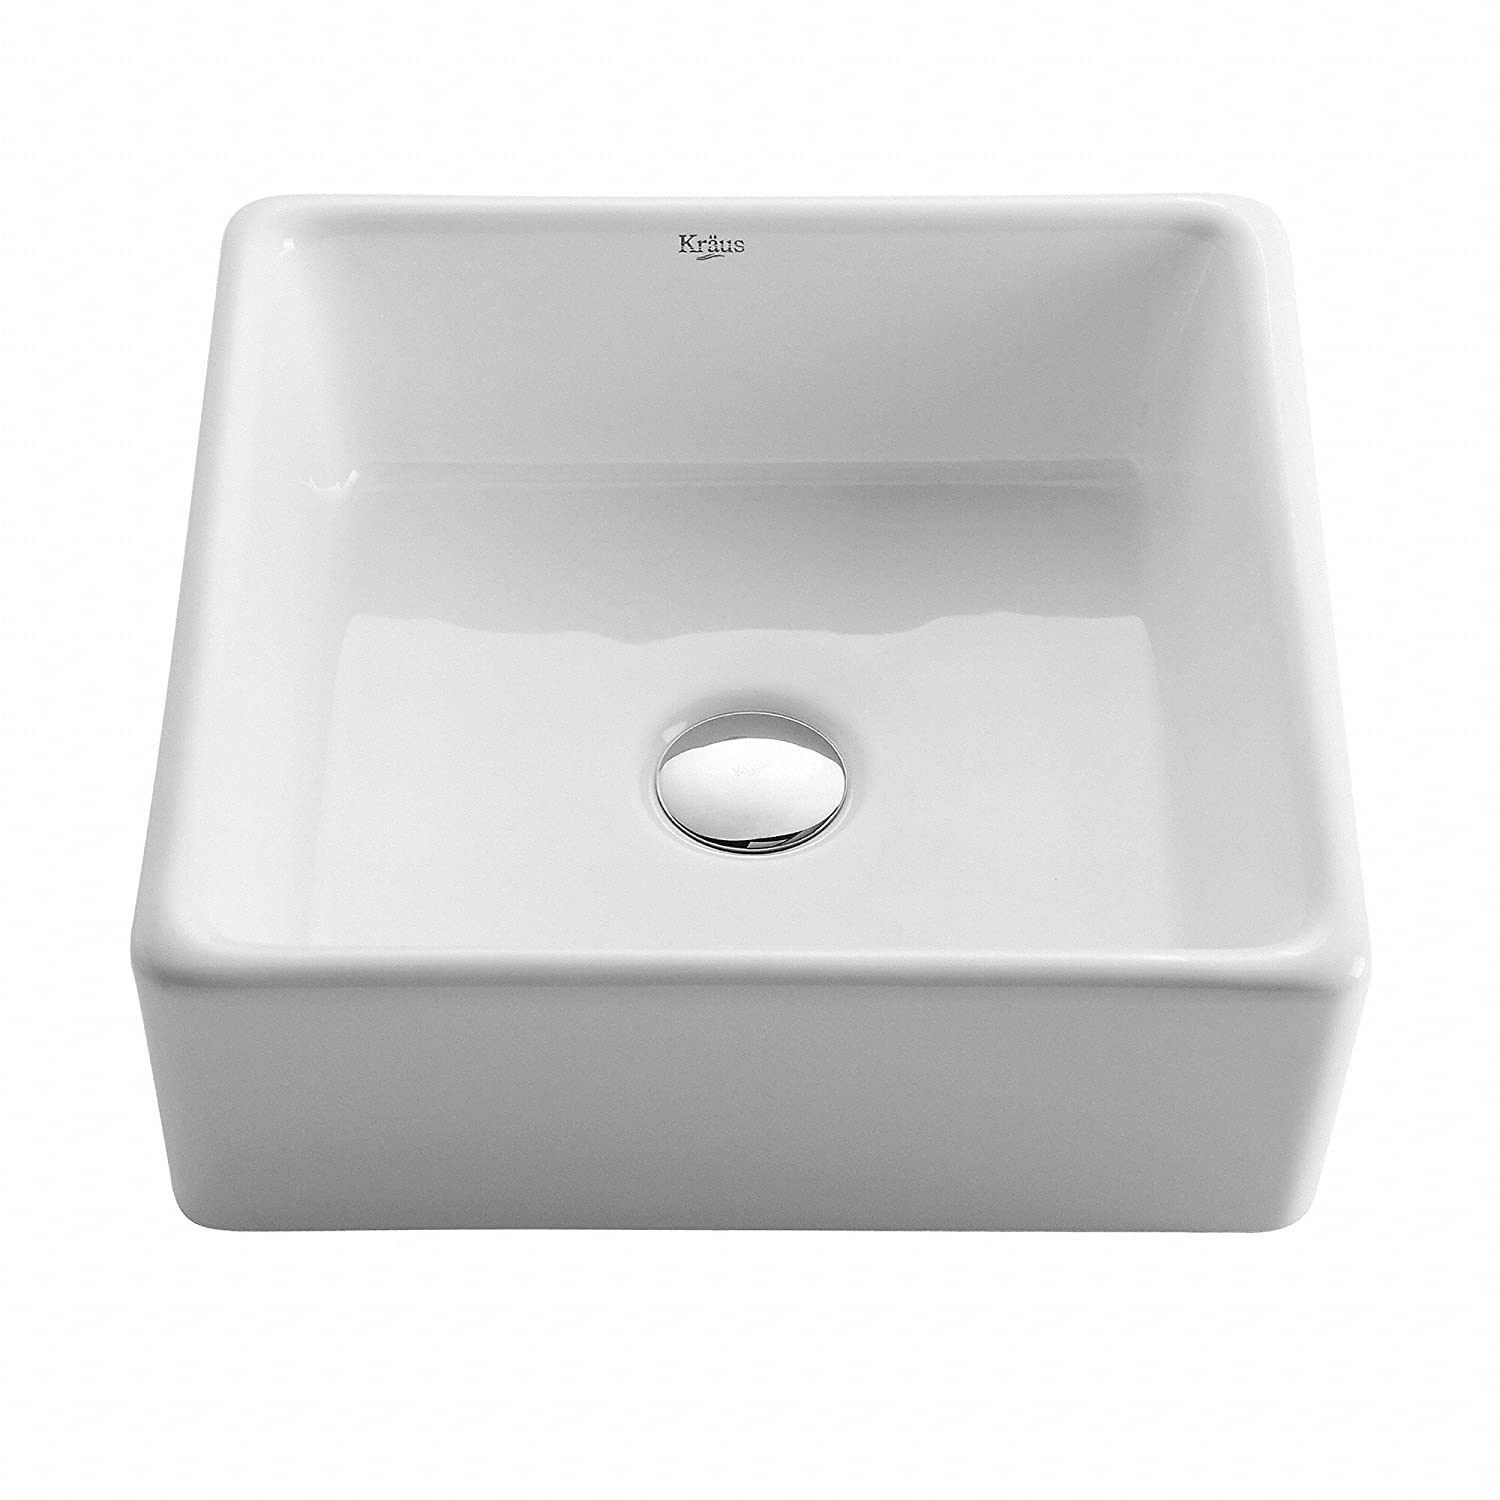 Kraus KCV 120 White Square Ceramic Bathroom Sink   Vessel Sinks   Amazon.com